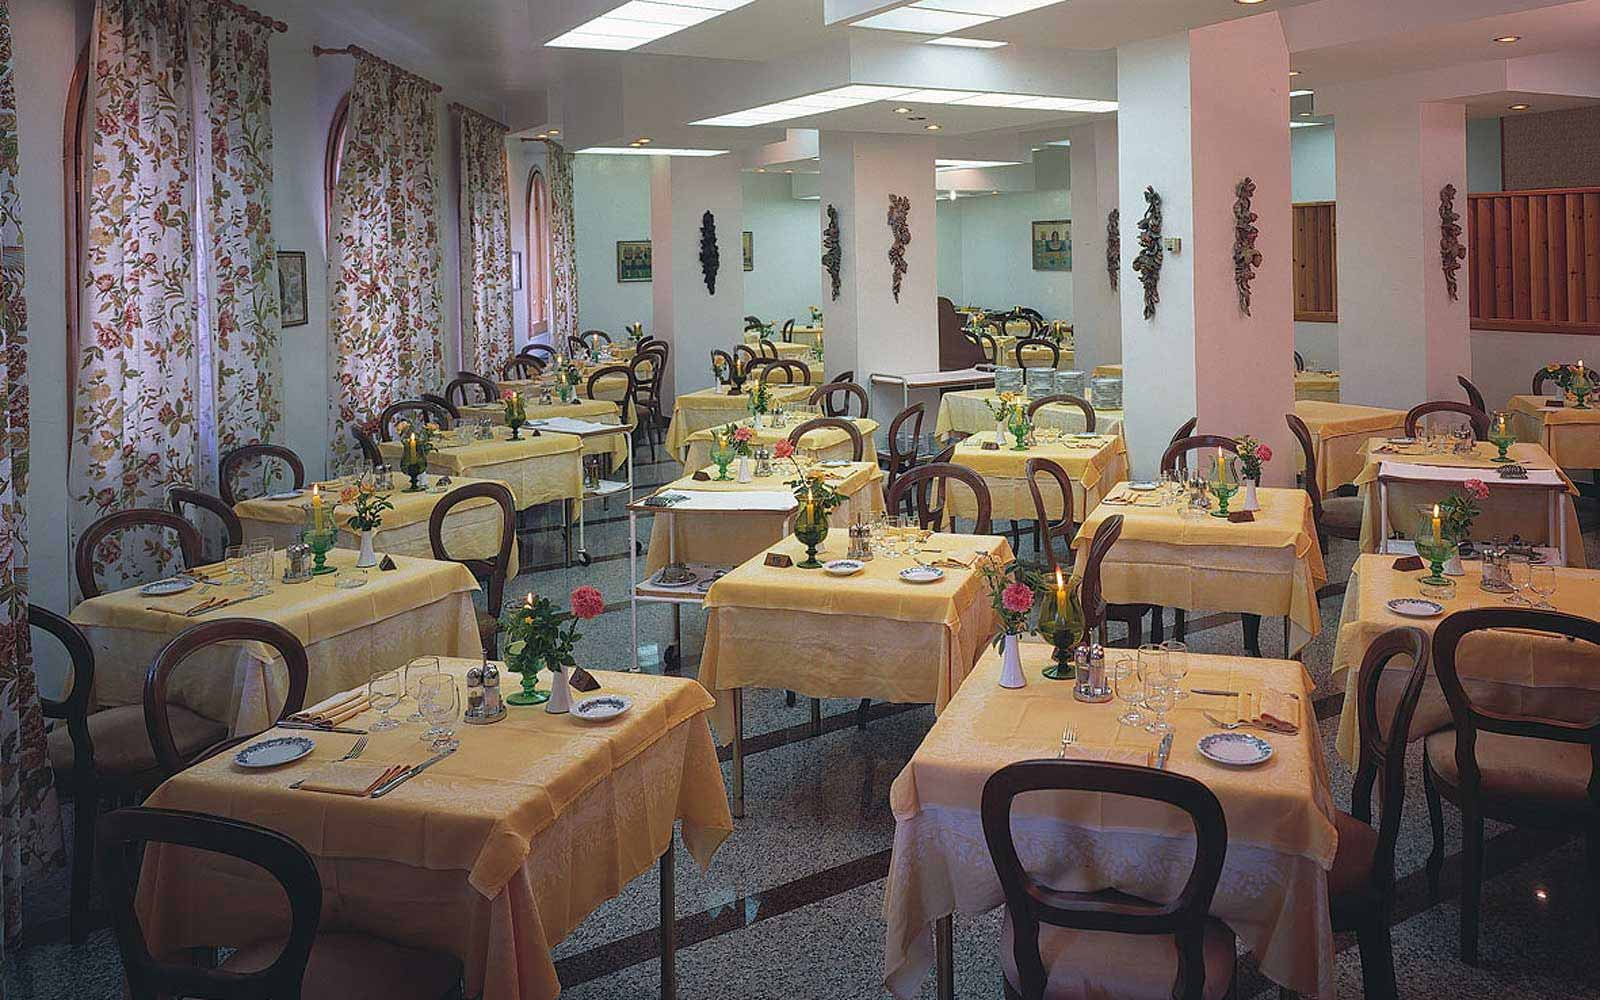 Restaurant at Hotel Ipanema